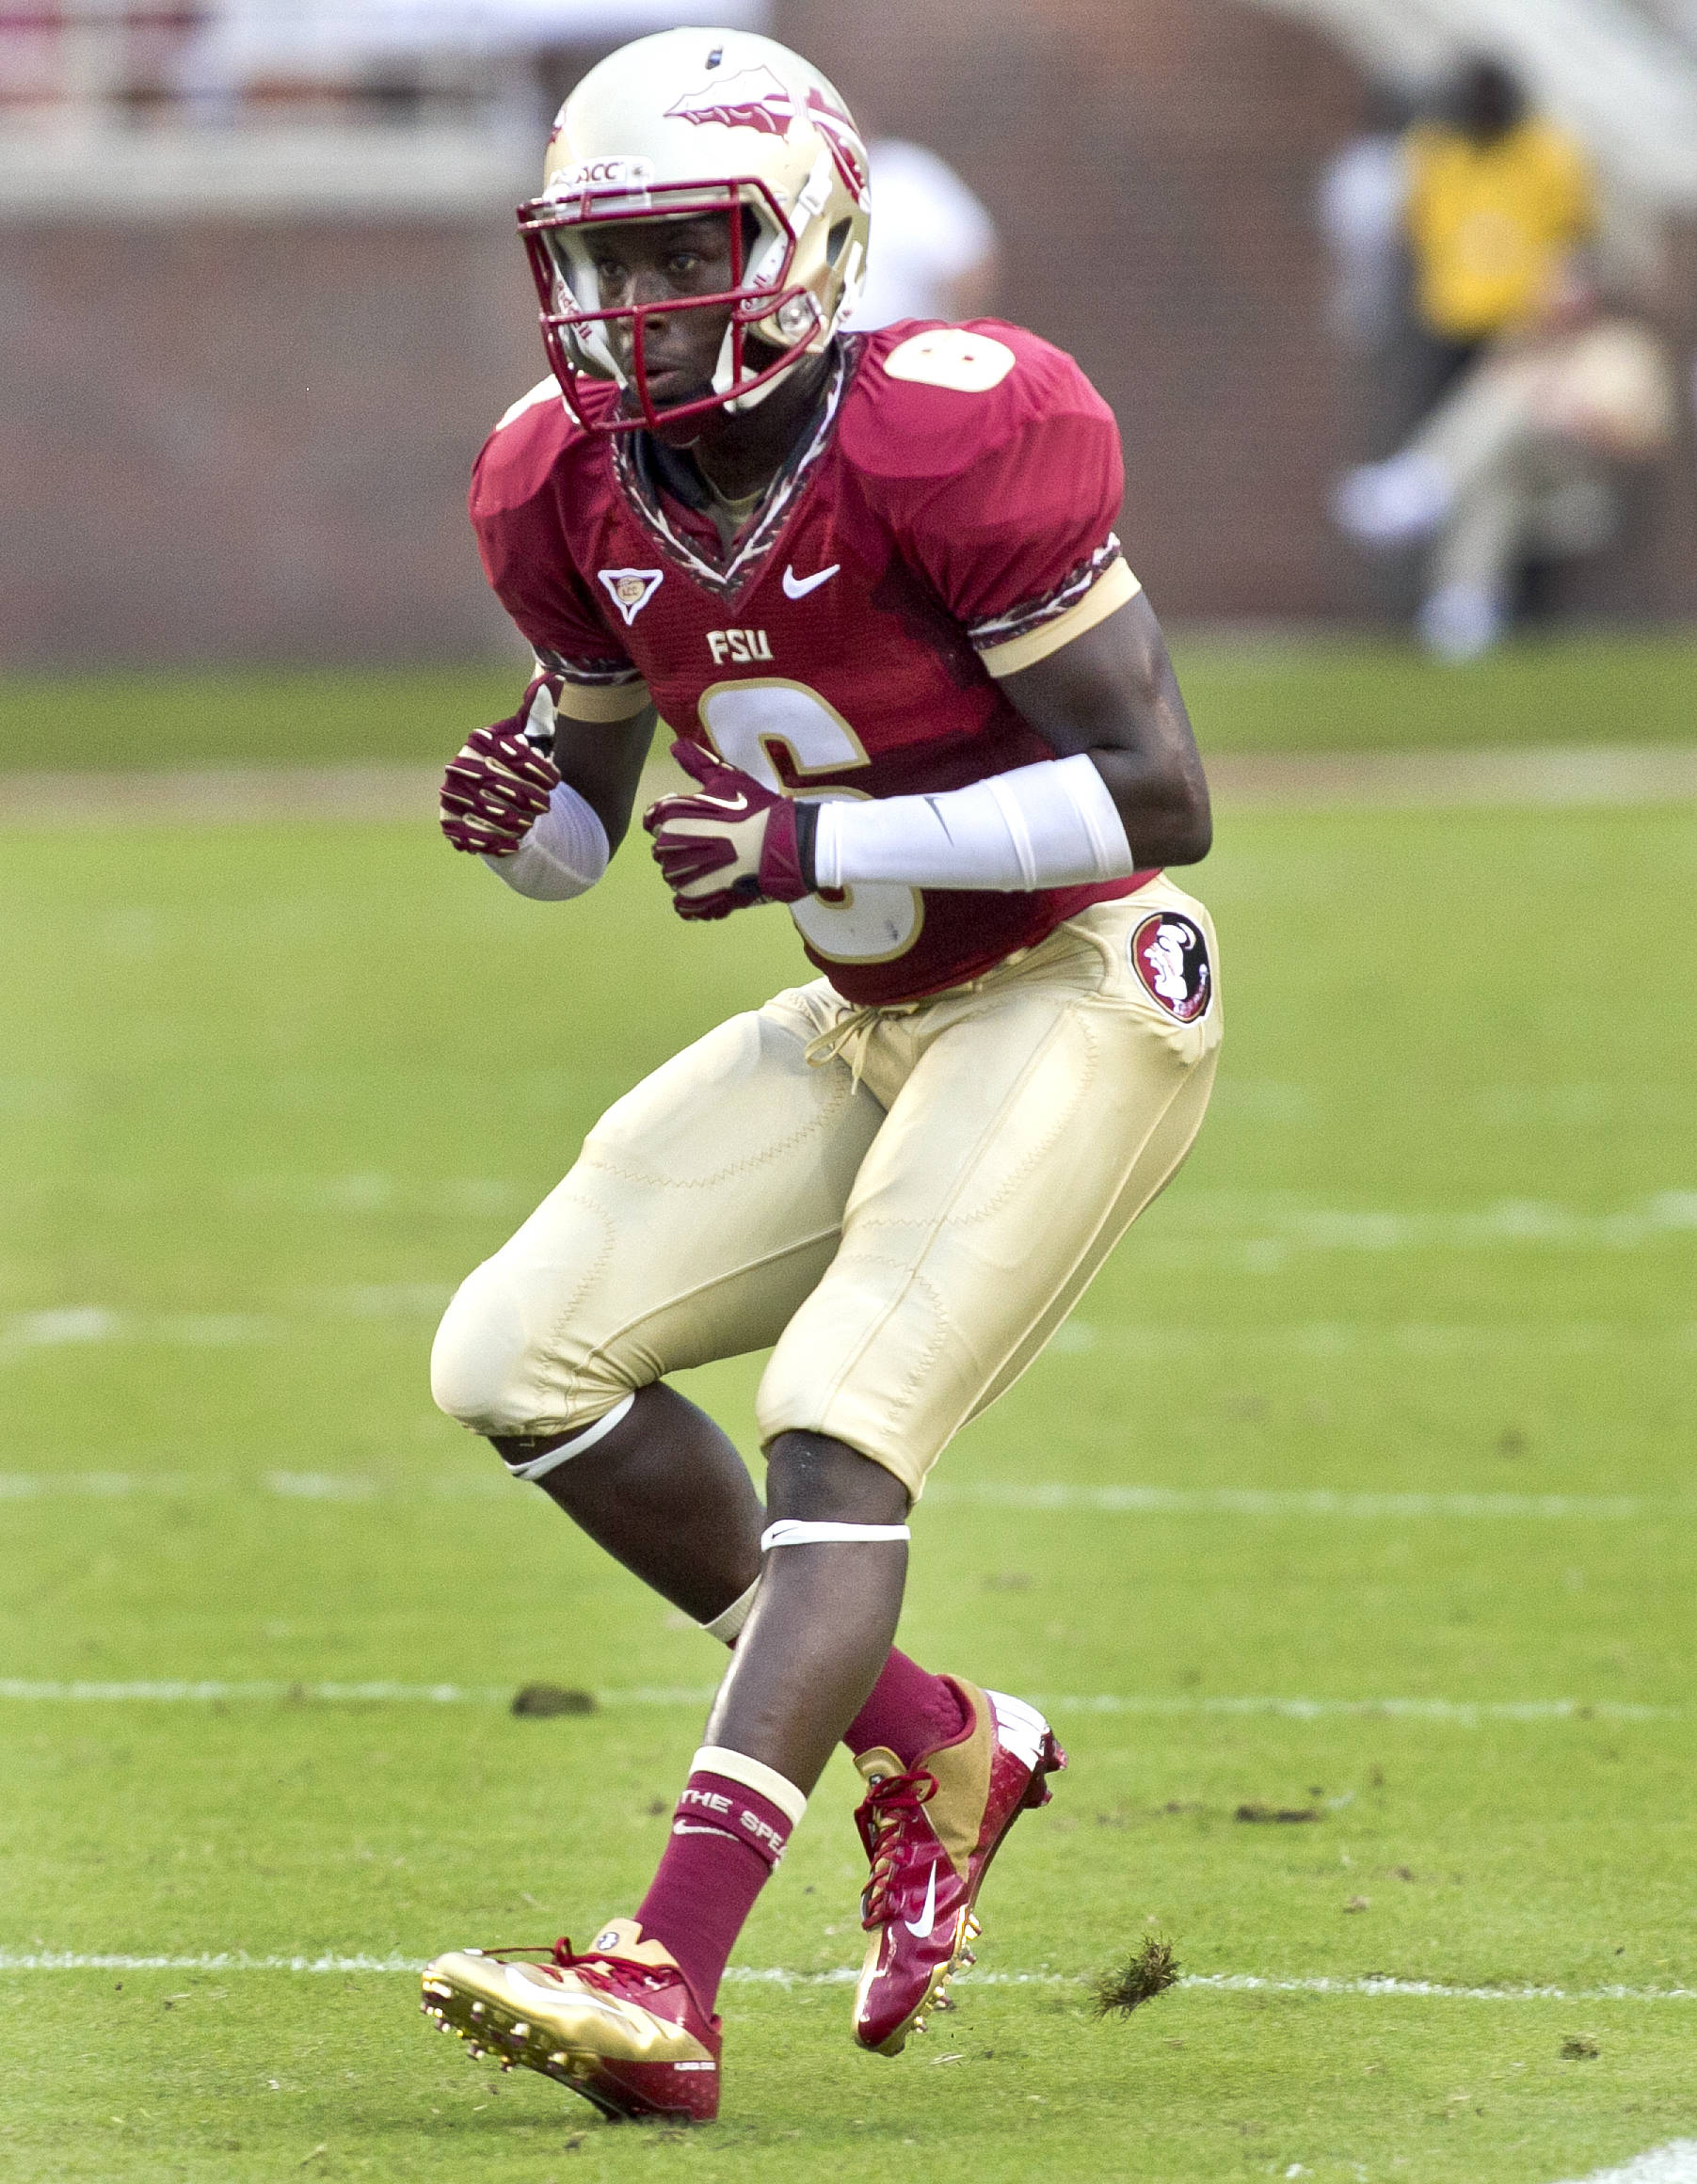 Nick Waisome (6),  FSU vs Savannah State, 9/8/12 (Photo by Steve Musco)